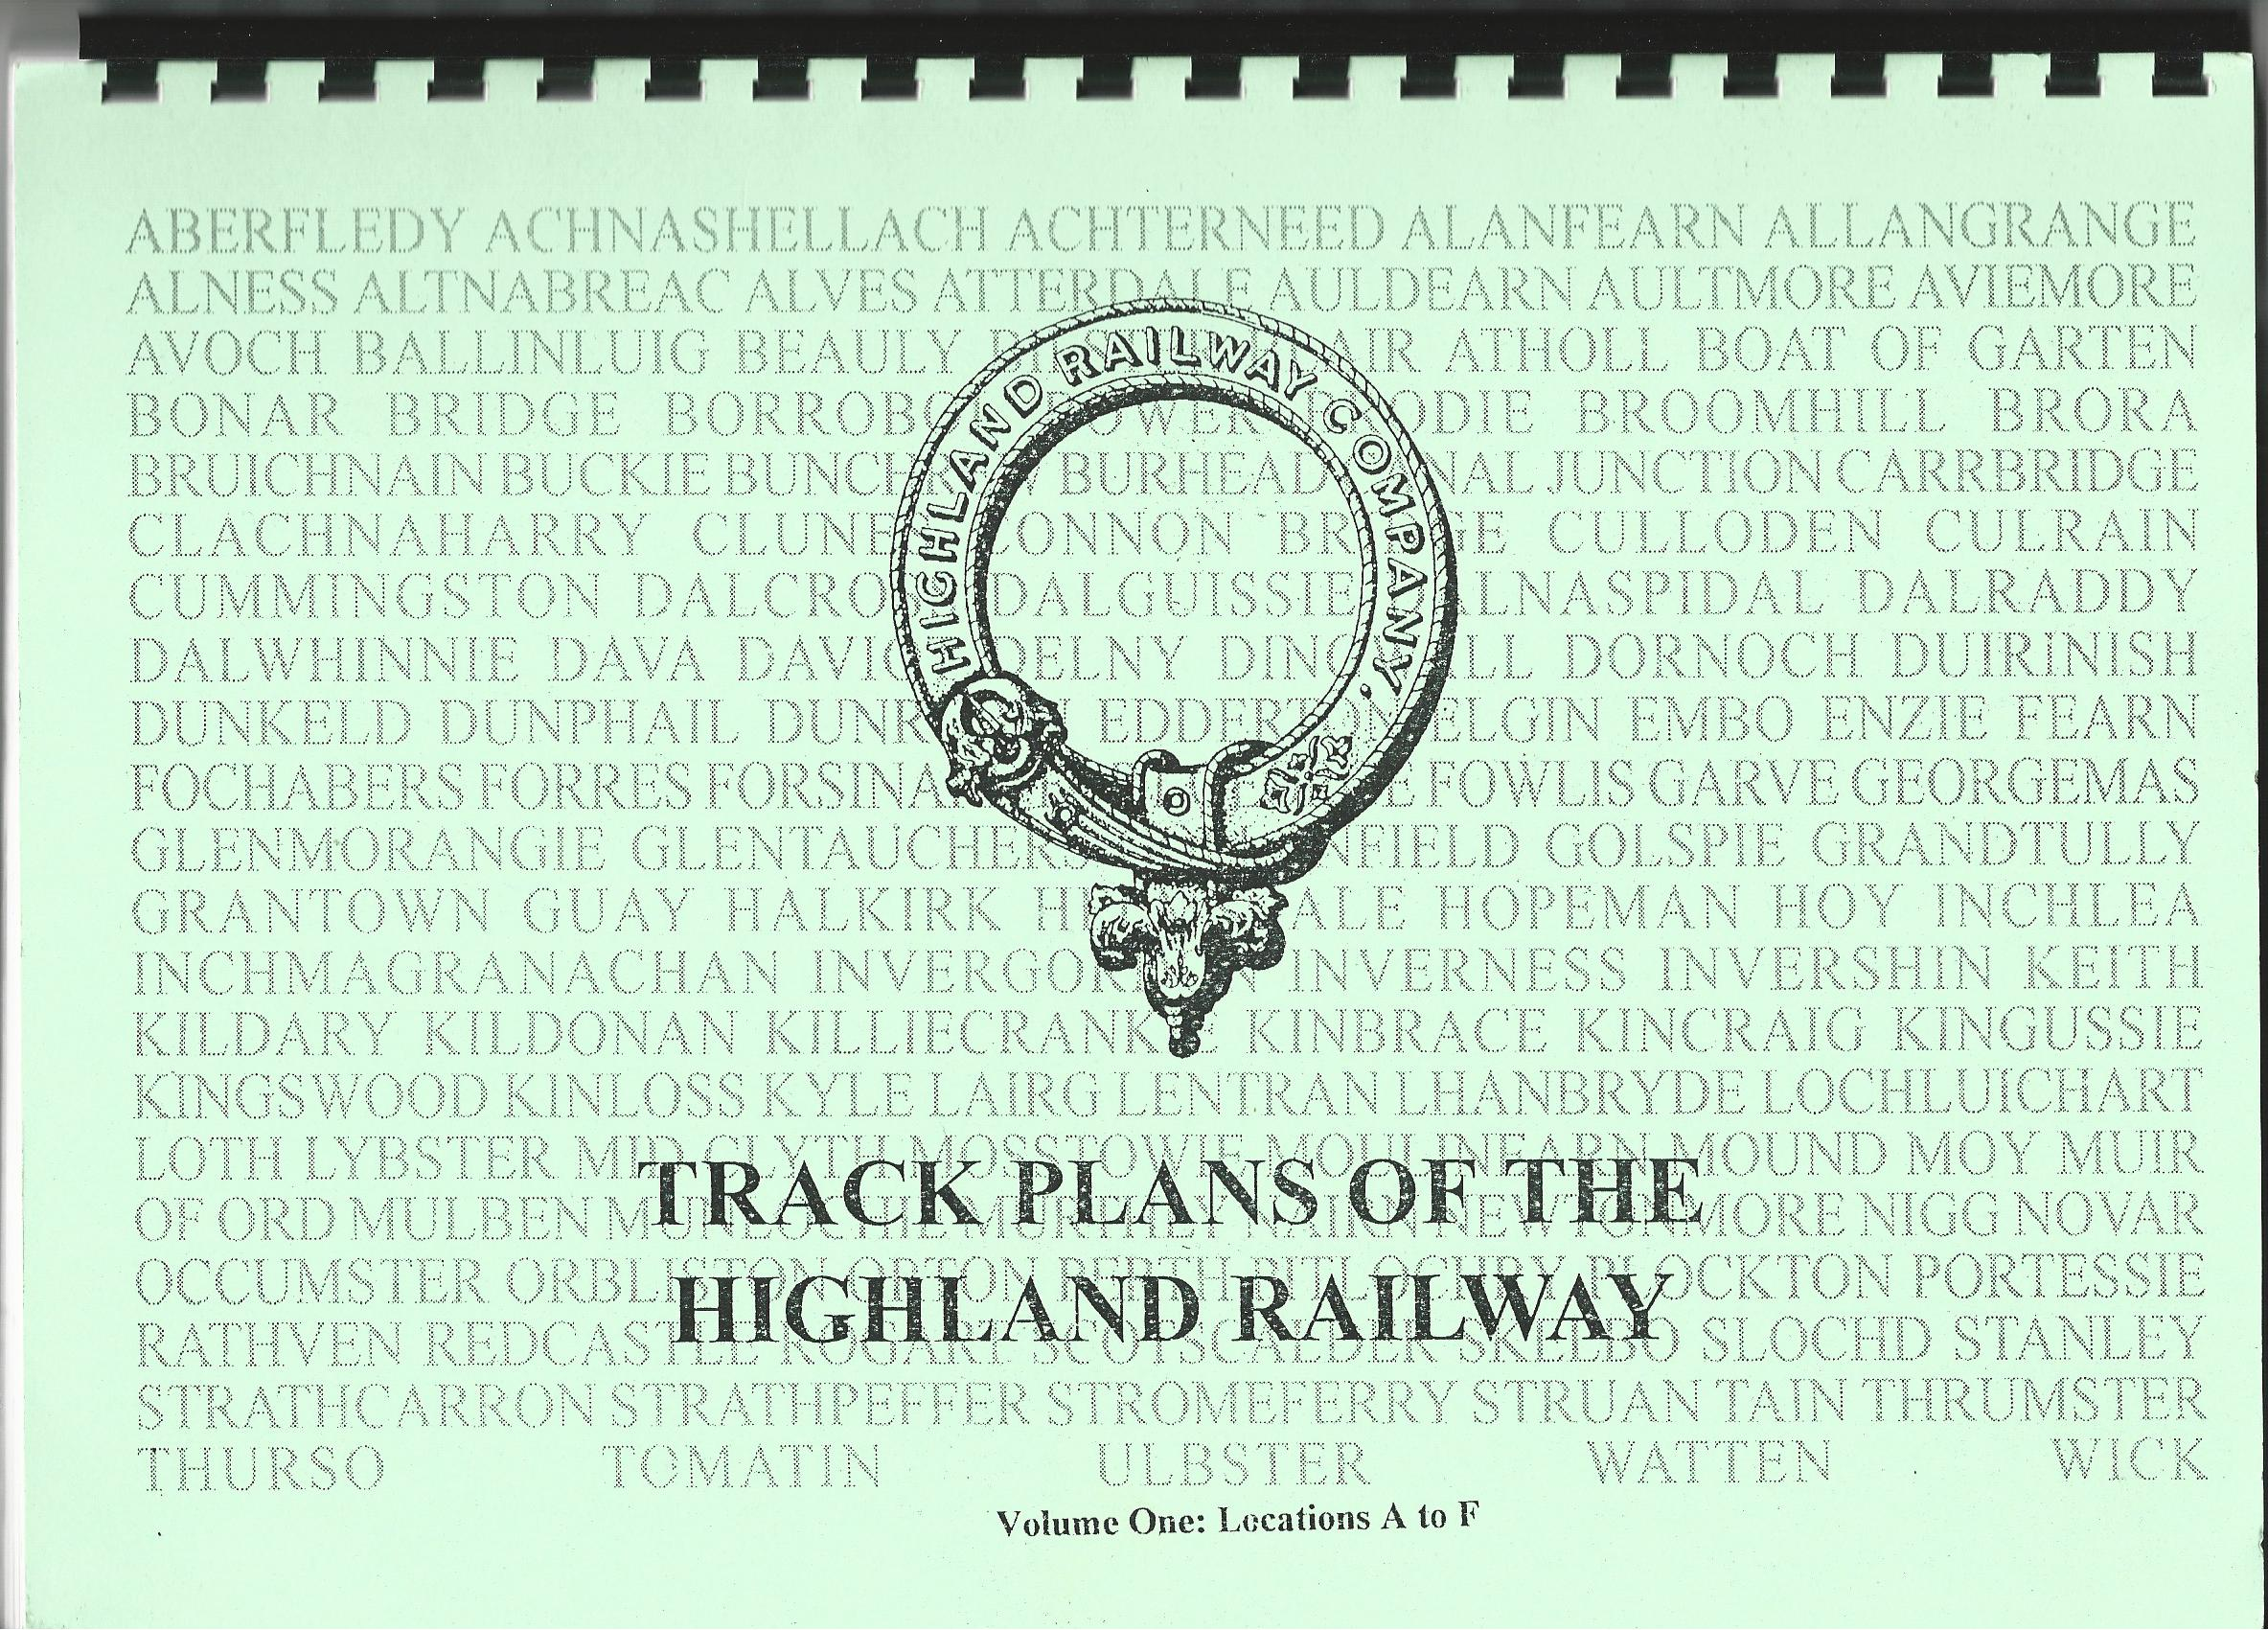 Image for Highland Railway Track Plans Volume One: Locations A to F. Volume 2: Locations G to W.